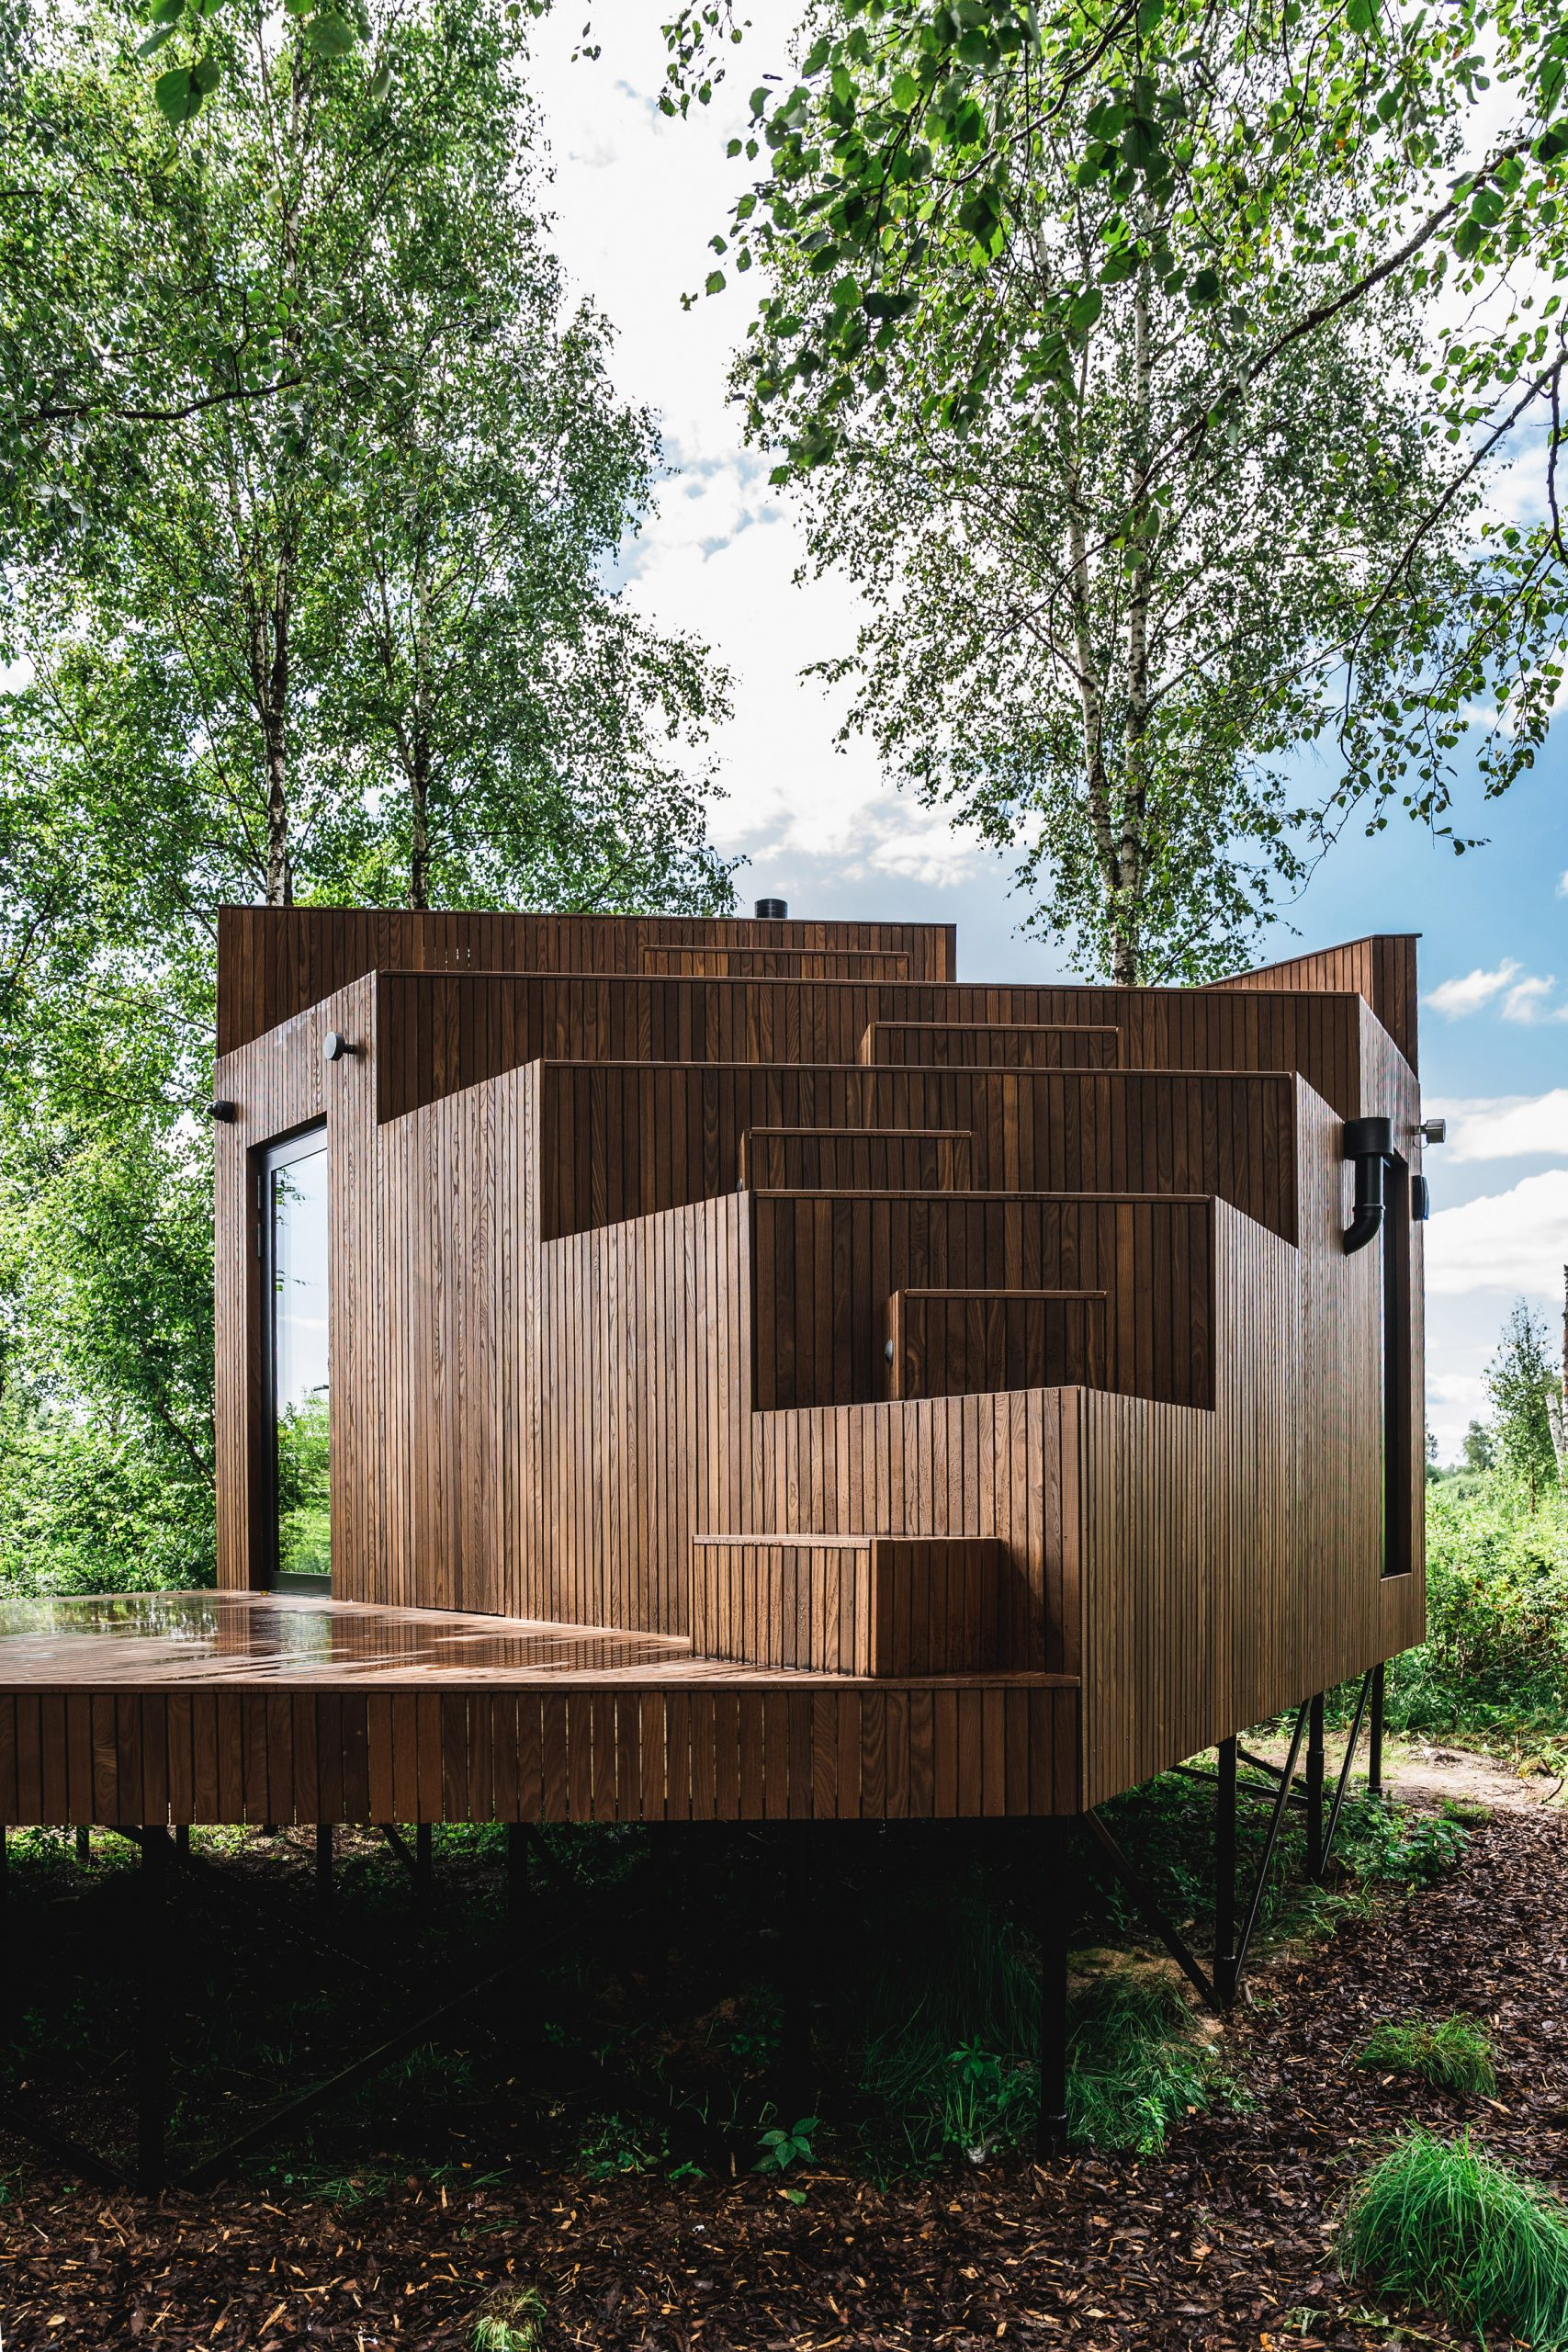 A stilted wooden cabin with a stepped facade